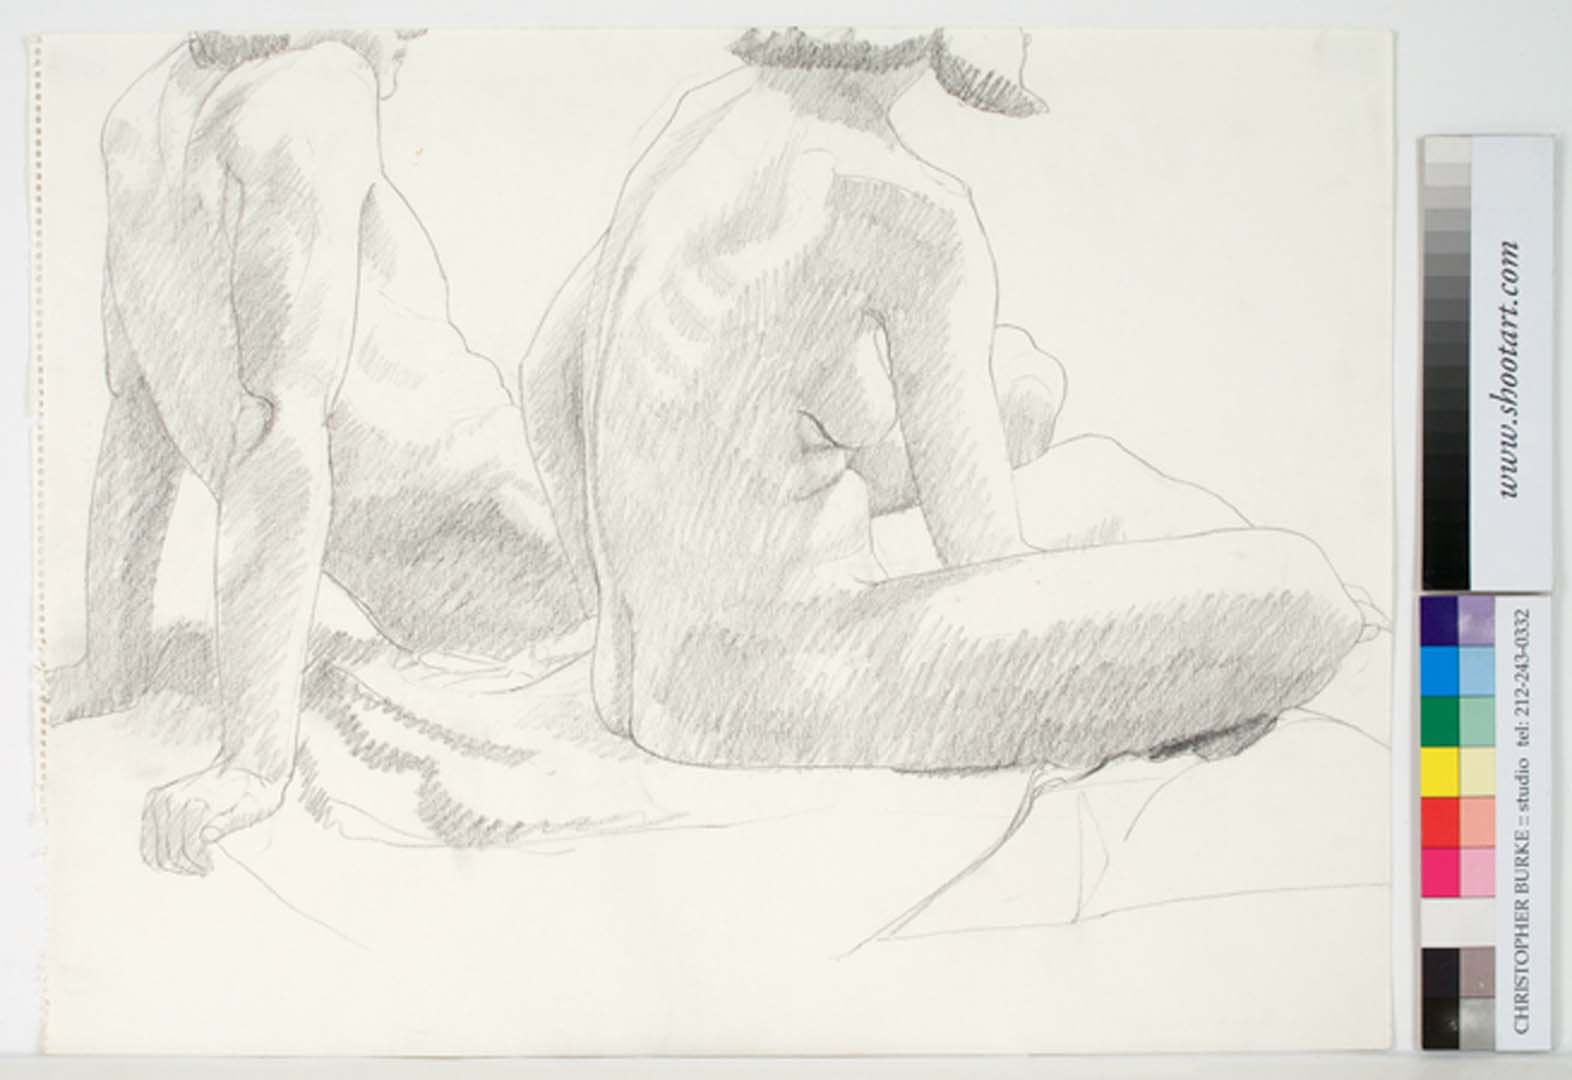 1969 Seated Female Model and Leaning Male Model Pencil on Paper 18 x 23.75